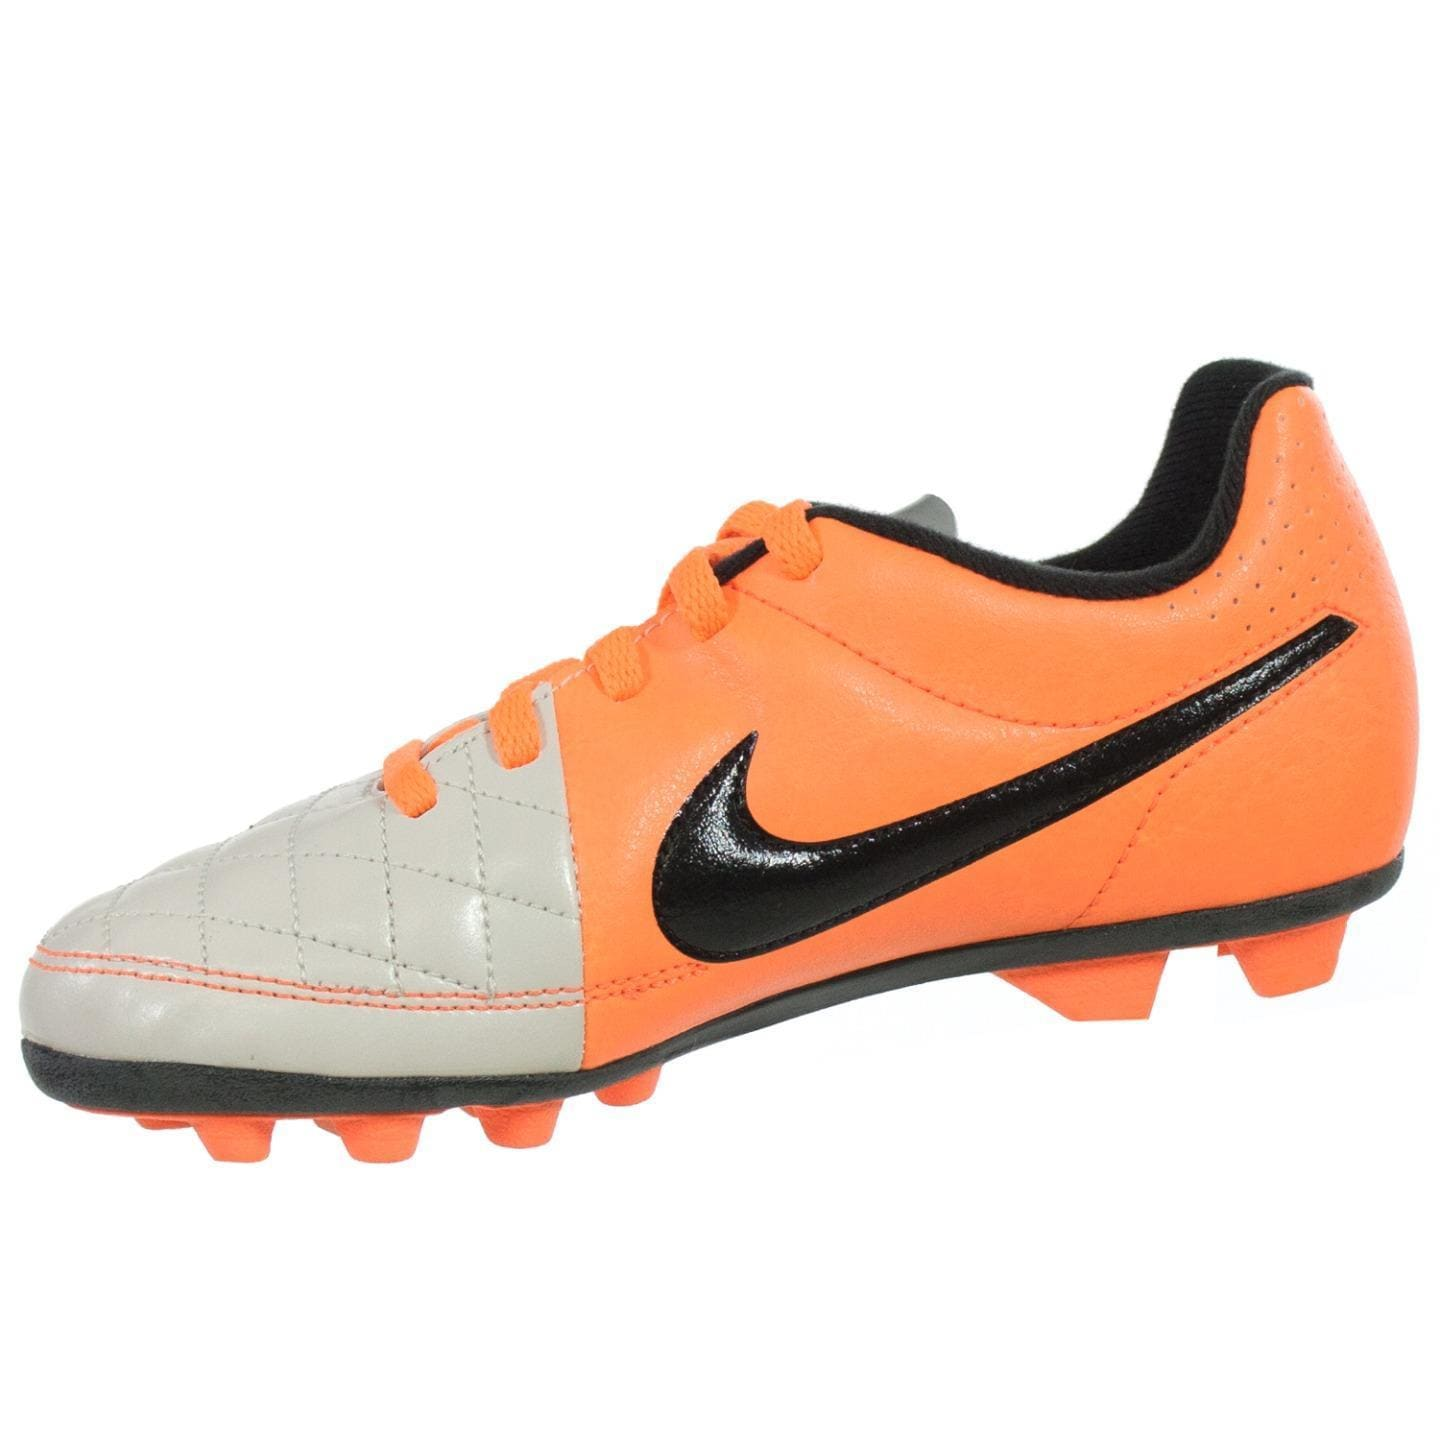 best service b81a3 41d81 Shop NIKE JR TIEMPO RIO II FG-R Youth Molded Soccer Cleats - Free Shipping  Today - Overstock - 15341553